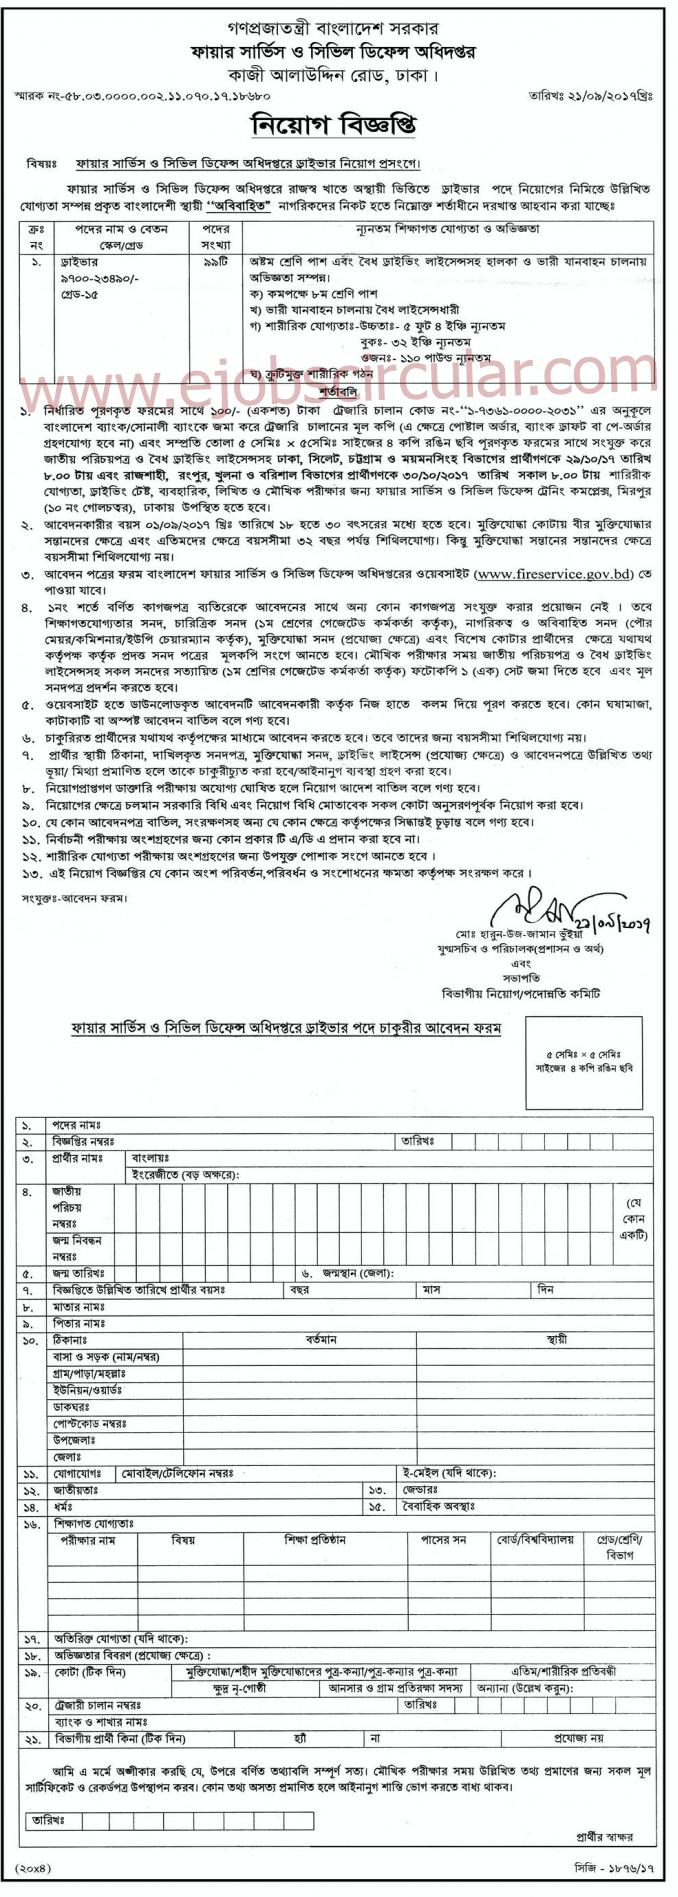 Fire Service and Civil Defense fire service Job Circular – Fire Service Application Form